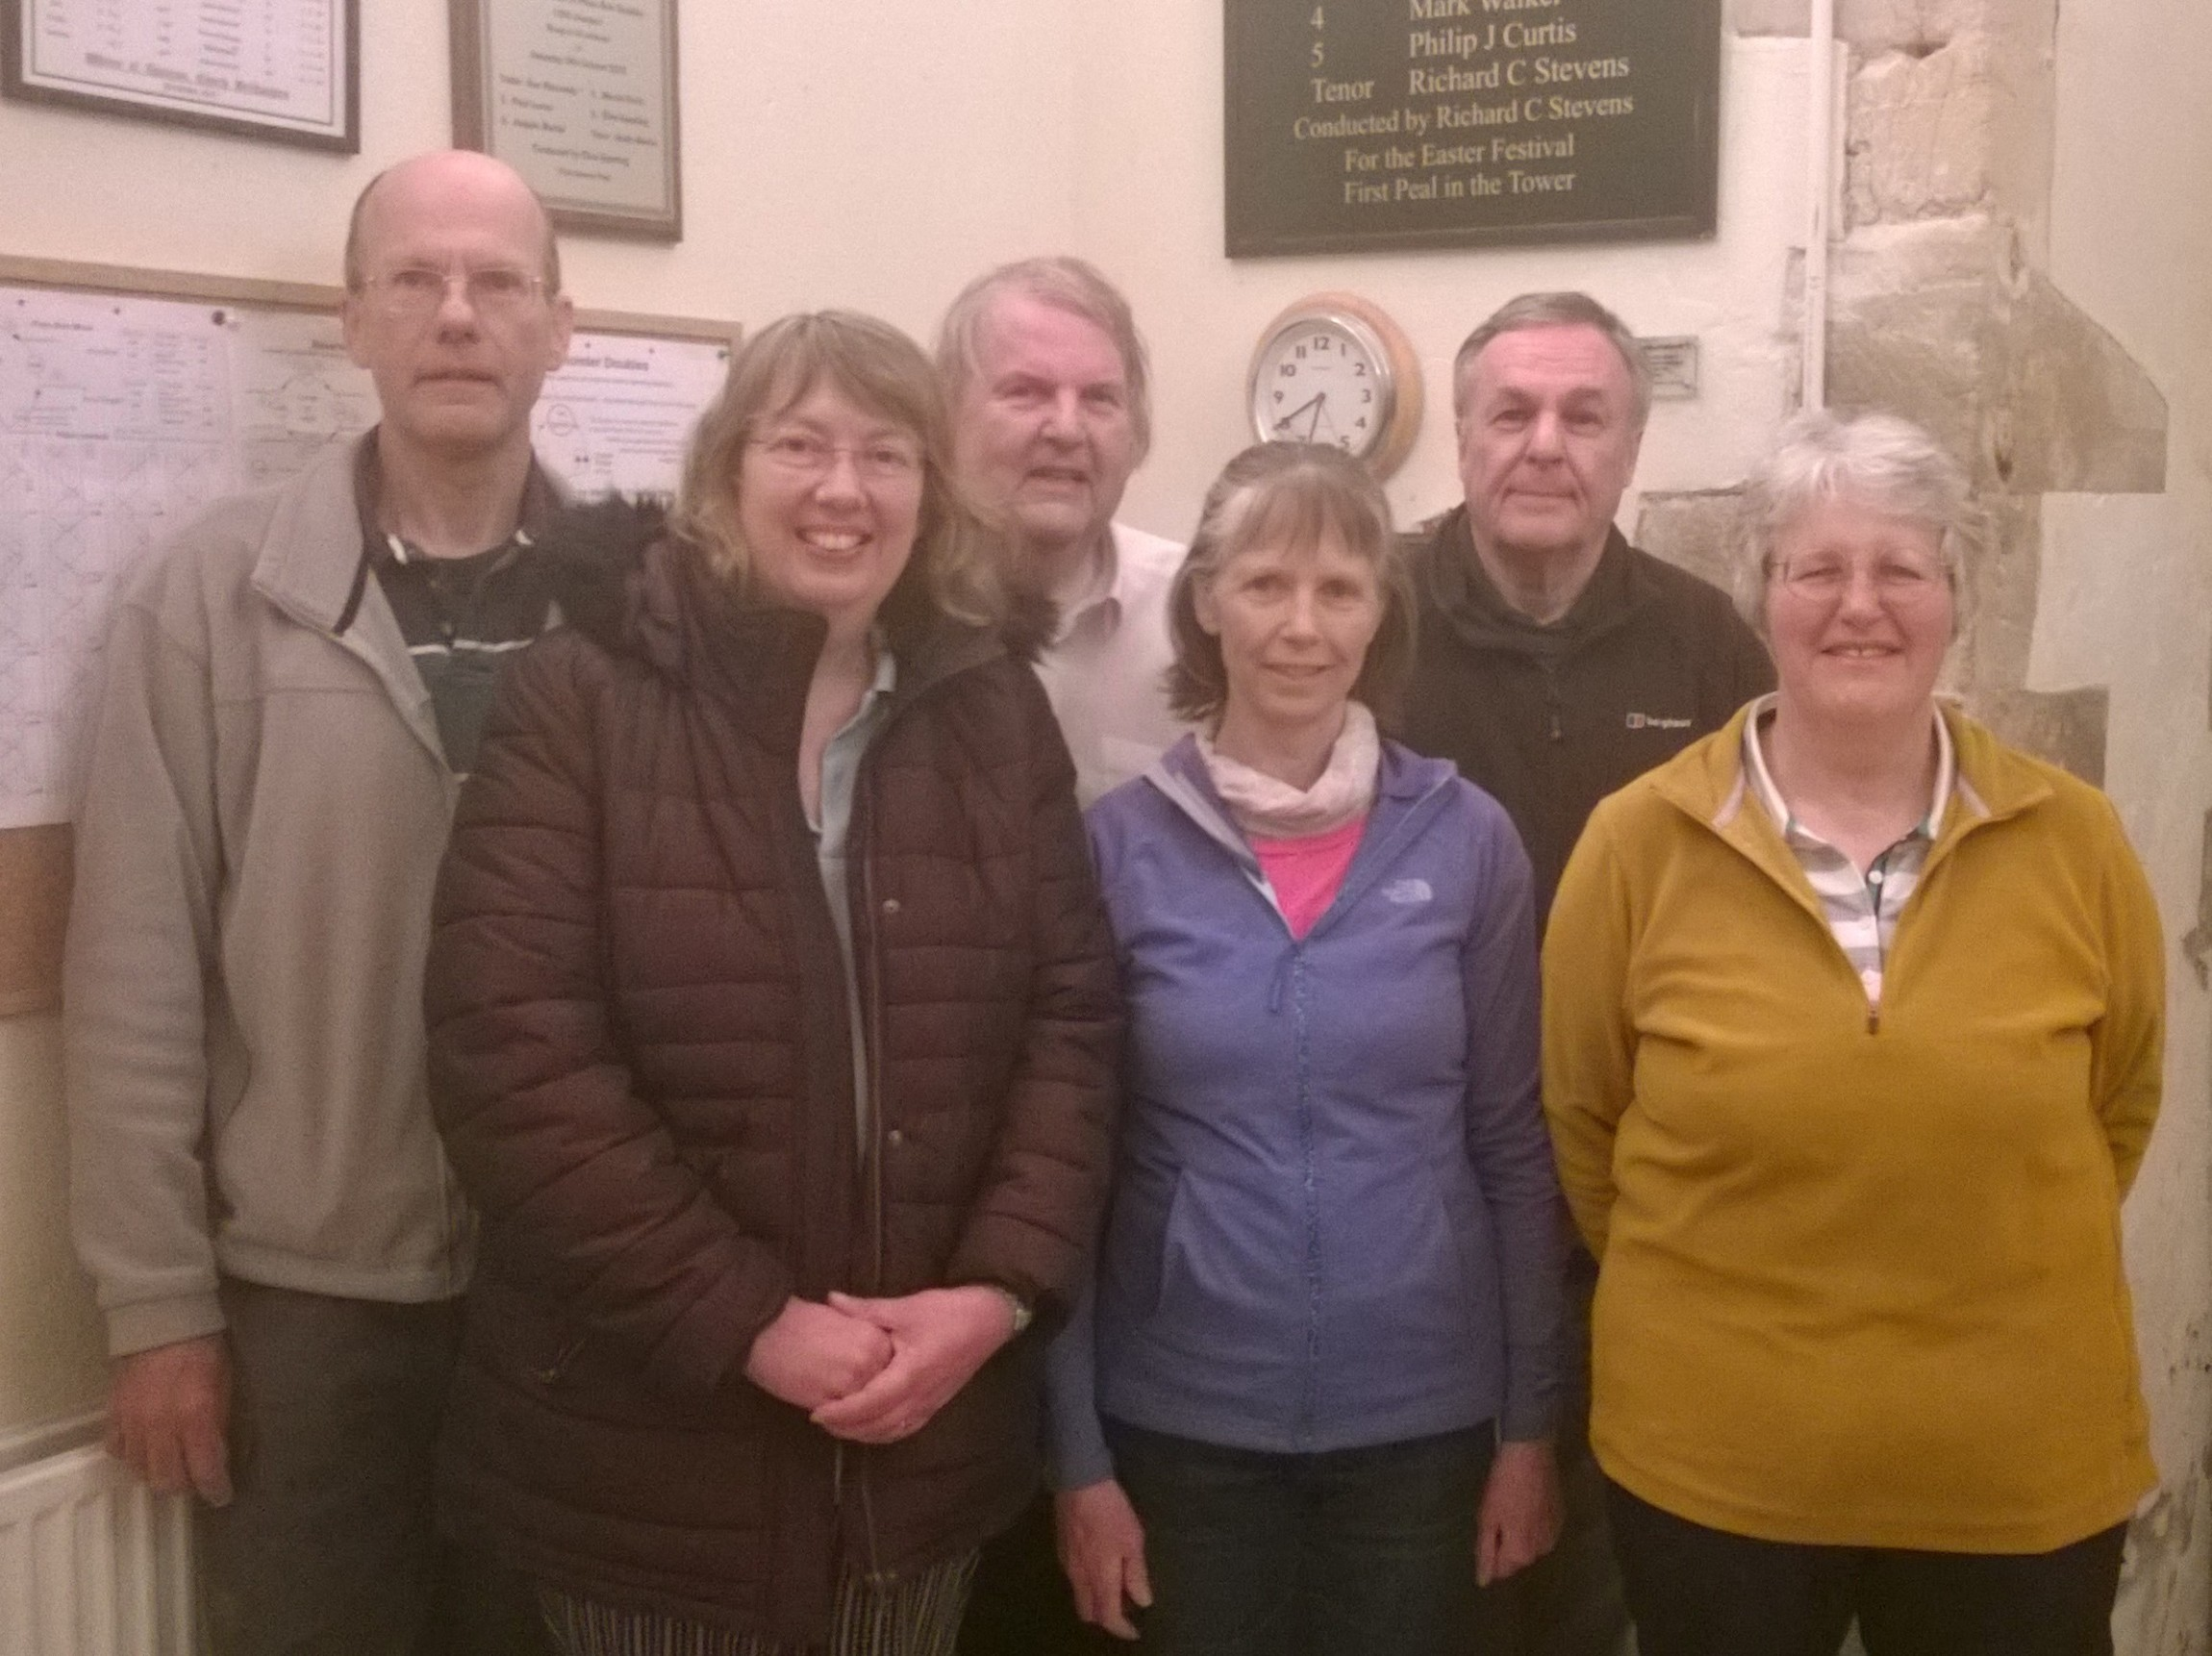 From left: Pete Ellis, Steph Warboys, Colin Turner, Sue Marshall, Graham Nabb, Nicola Turner.